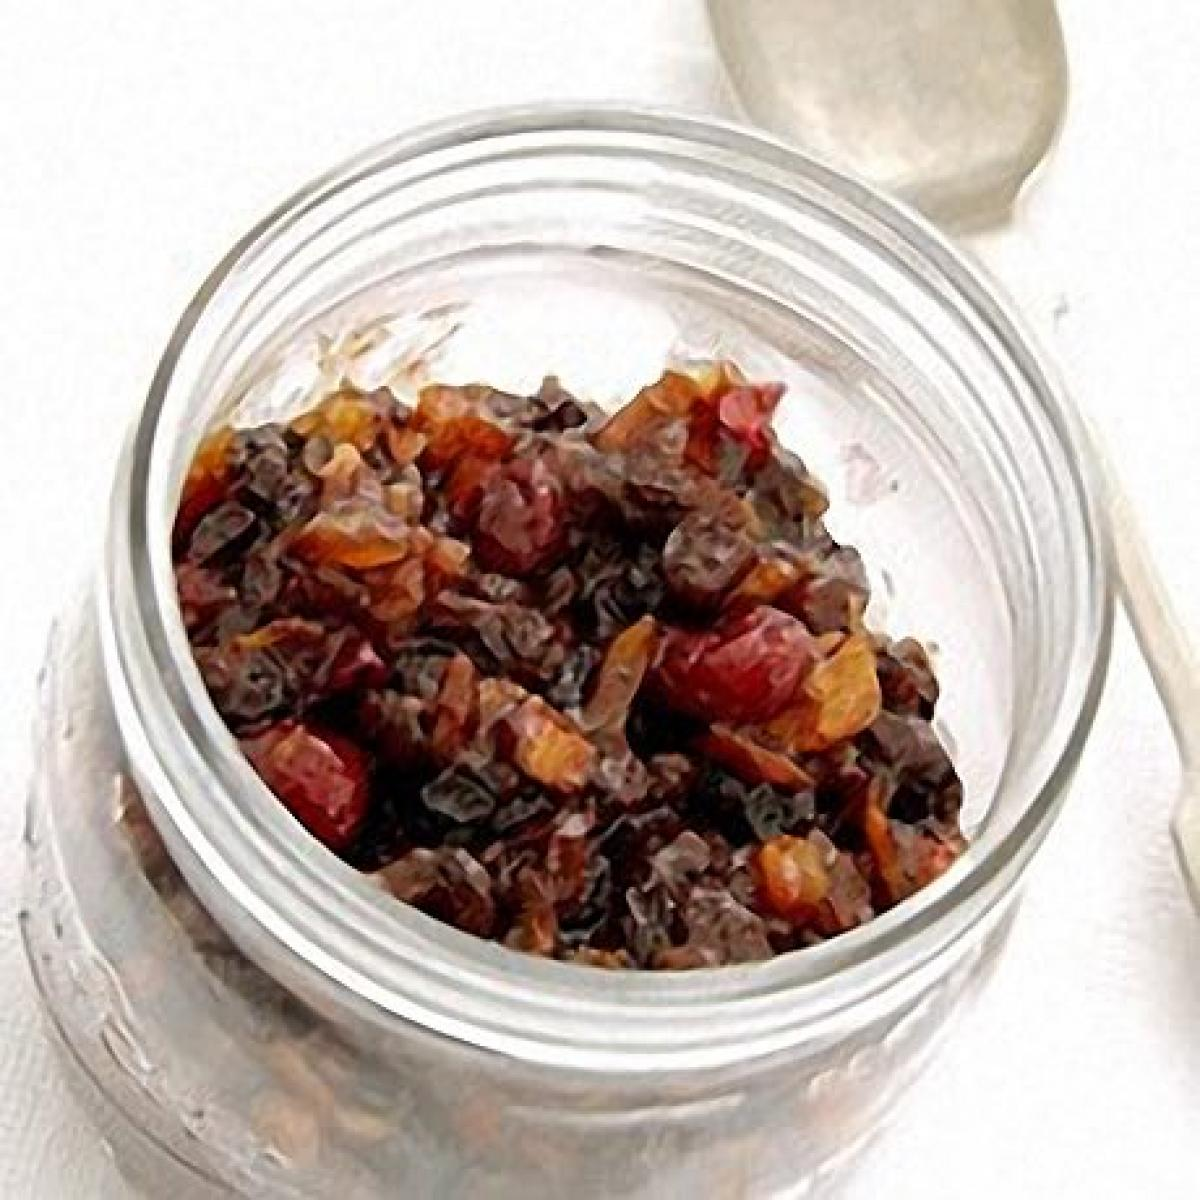 A picture of Delia's Wholefood Mincemeat Slices recipe